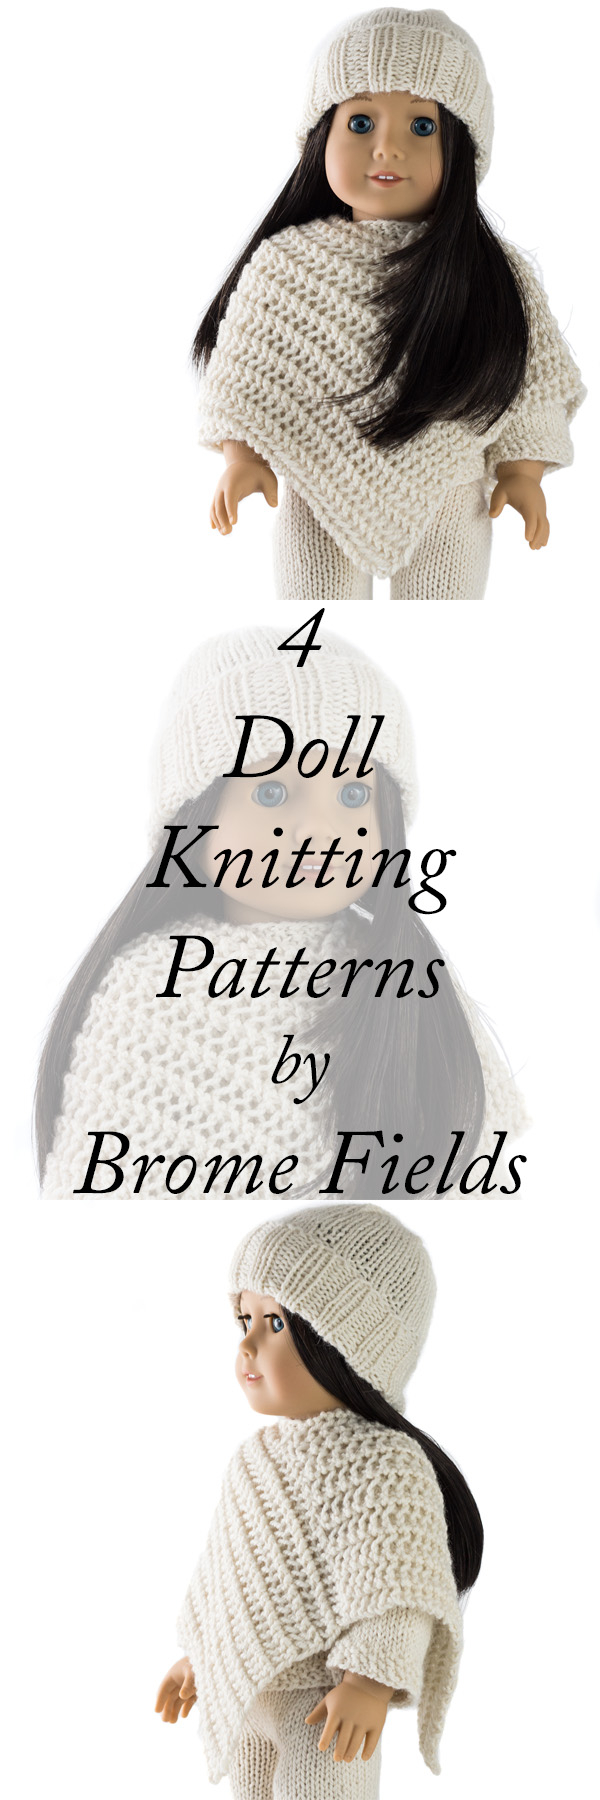 Free Knitting Patterns For Dolls Hats Cozy Outfit Doll Hat Sweater Poncho And Pants Knitting Patterns